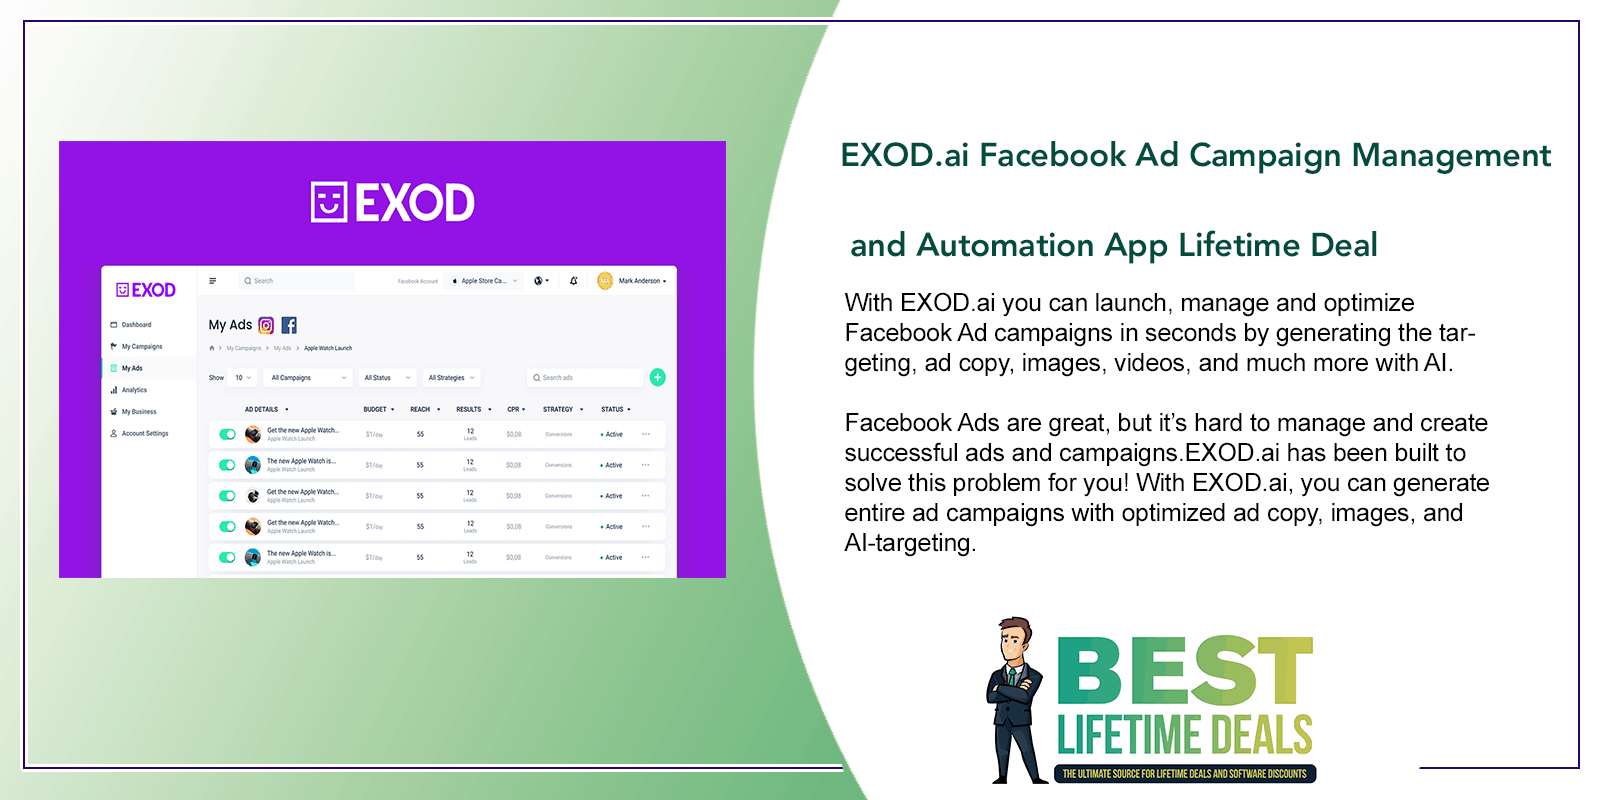 EXOD.ai Facebook Ad Campaign Management and Automation App Featured Image